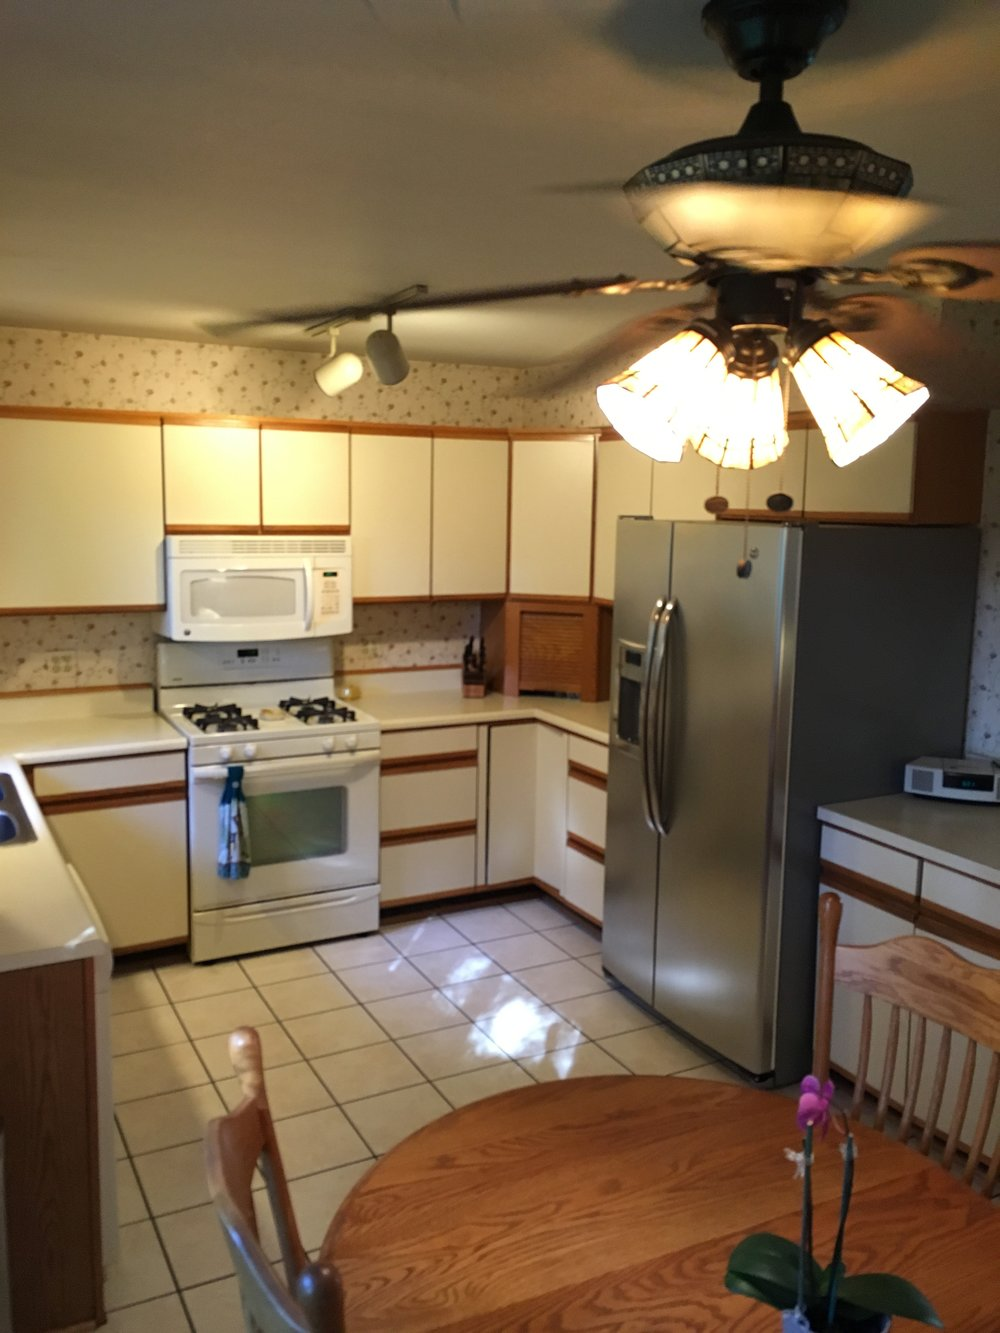 The size and placement of the appliances have this room feeling cramped.